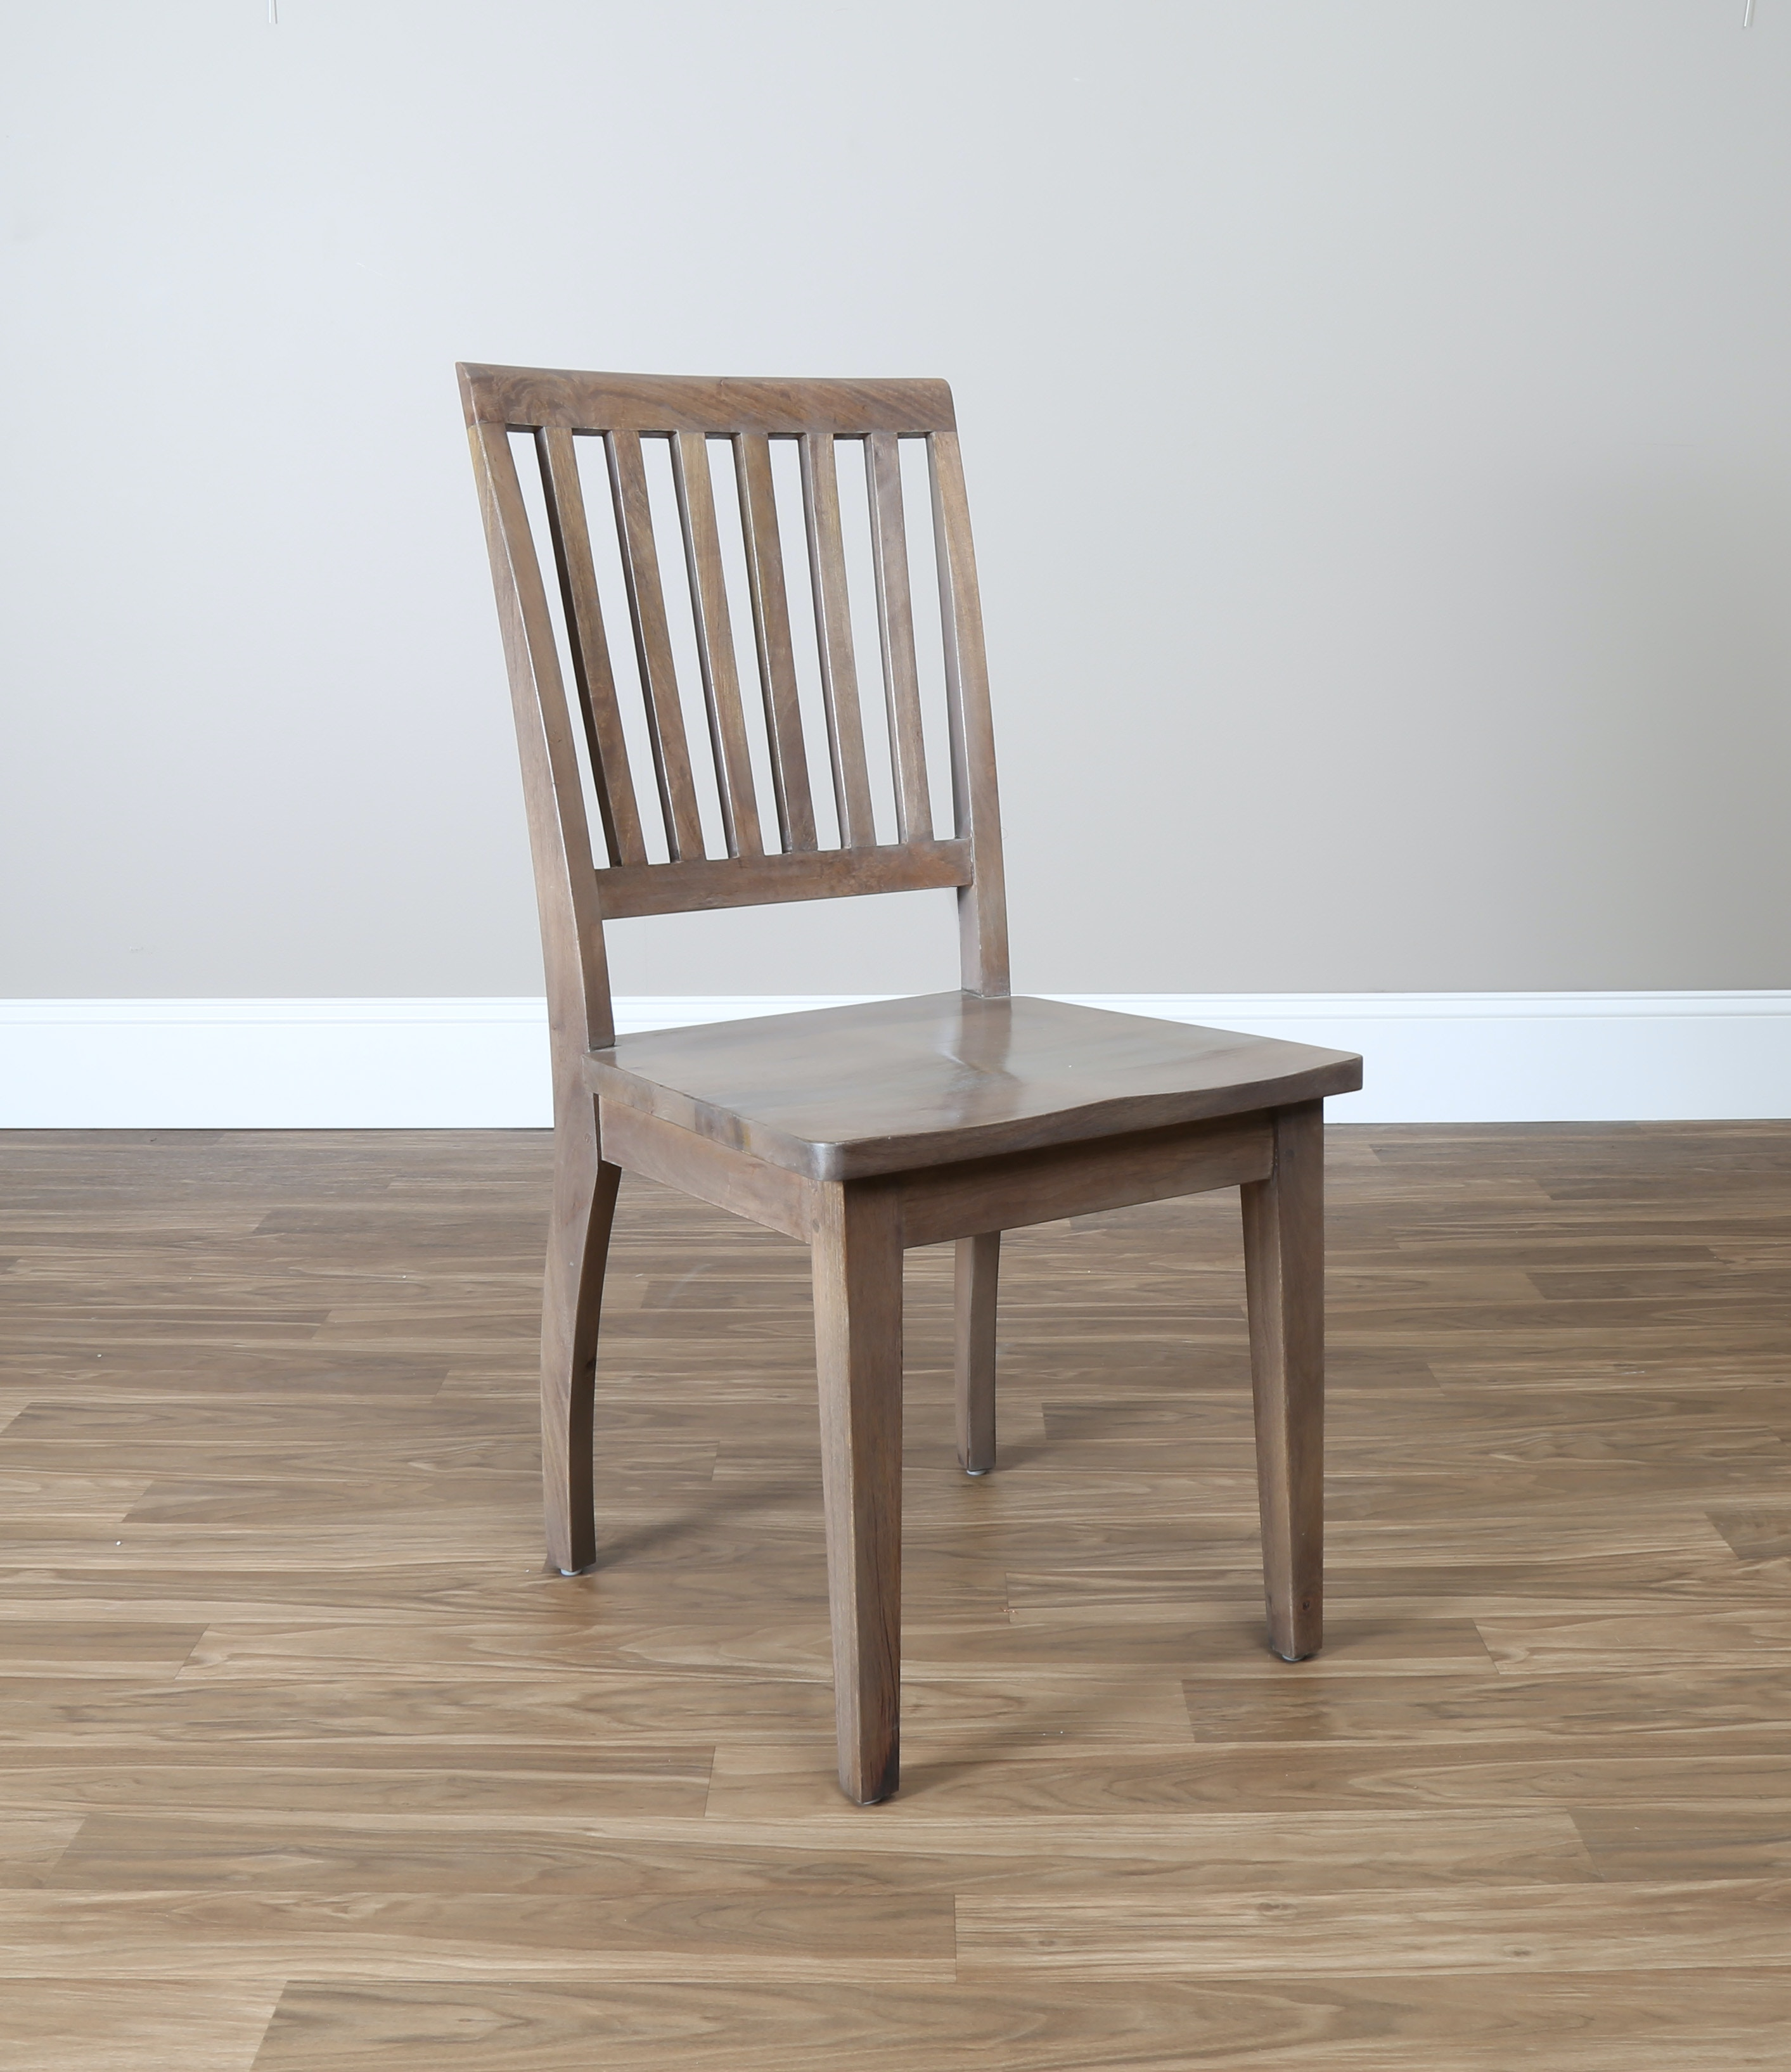 Clearance Bristow Tate Dining Chair Greige BNGJ1ST From Walter E. Smithe  Furniture + Design